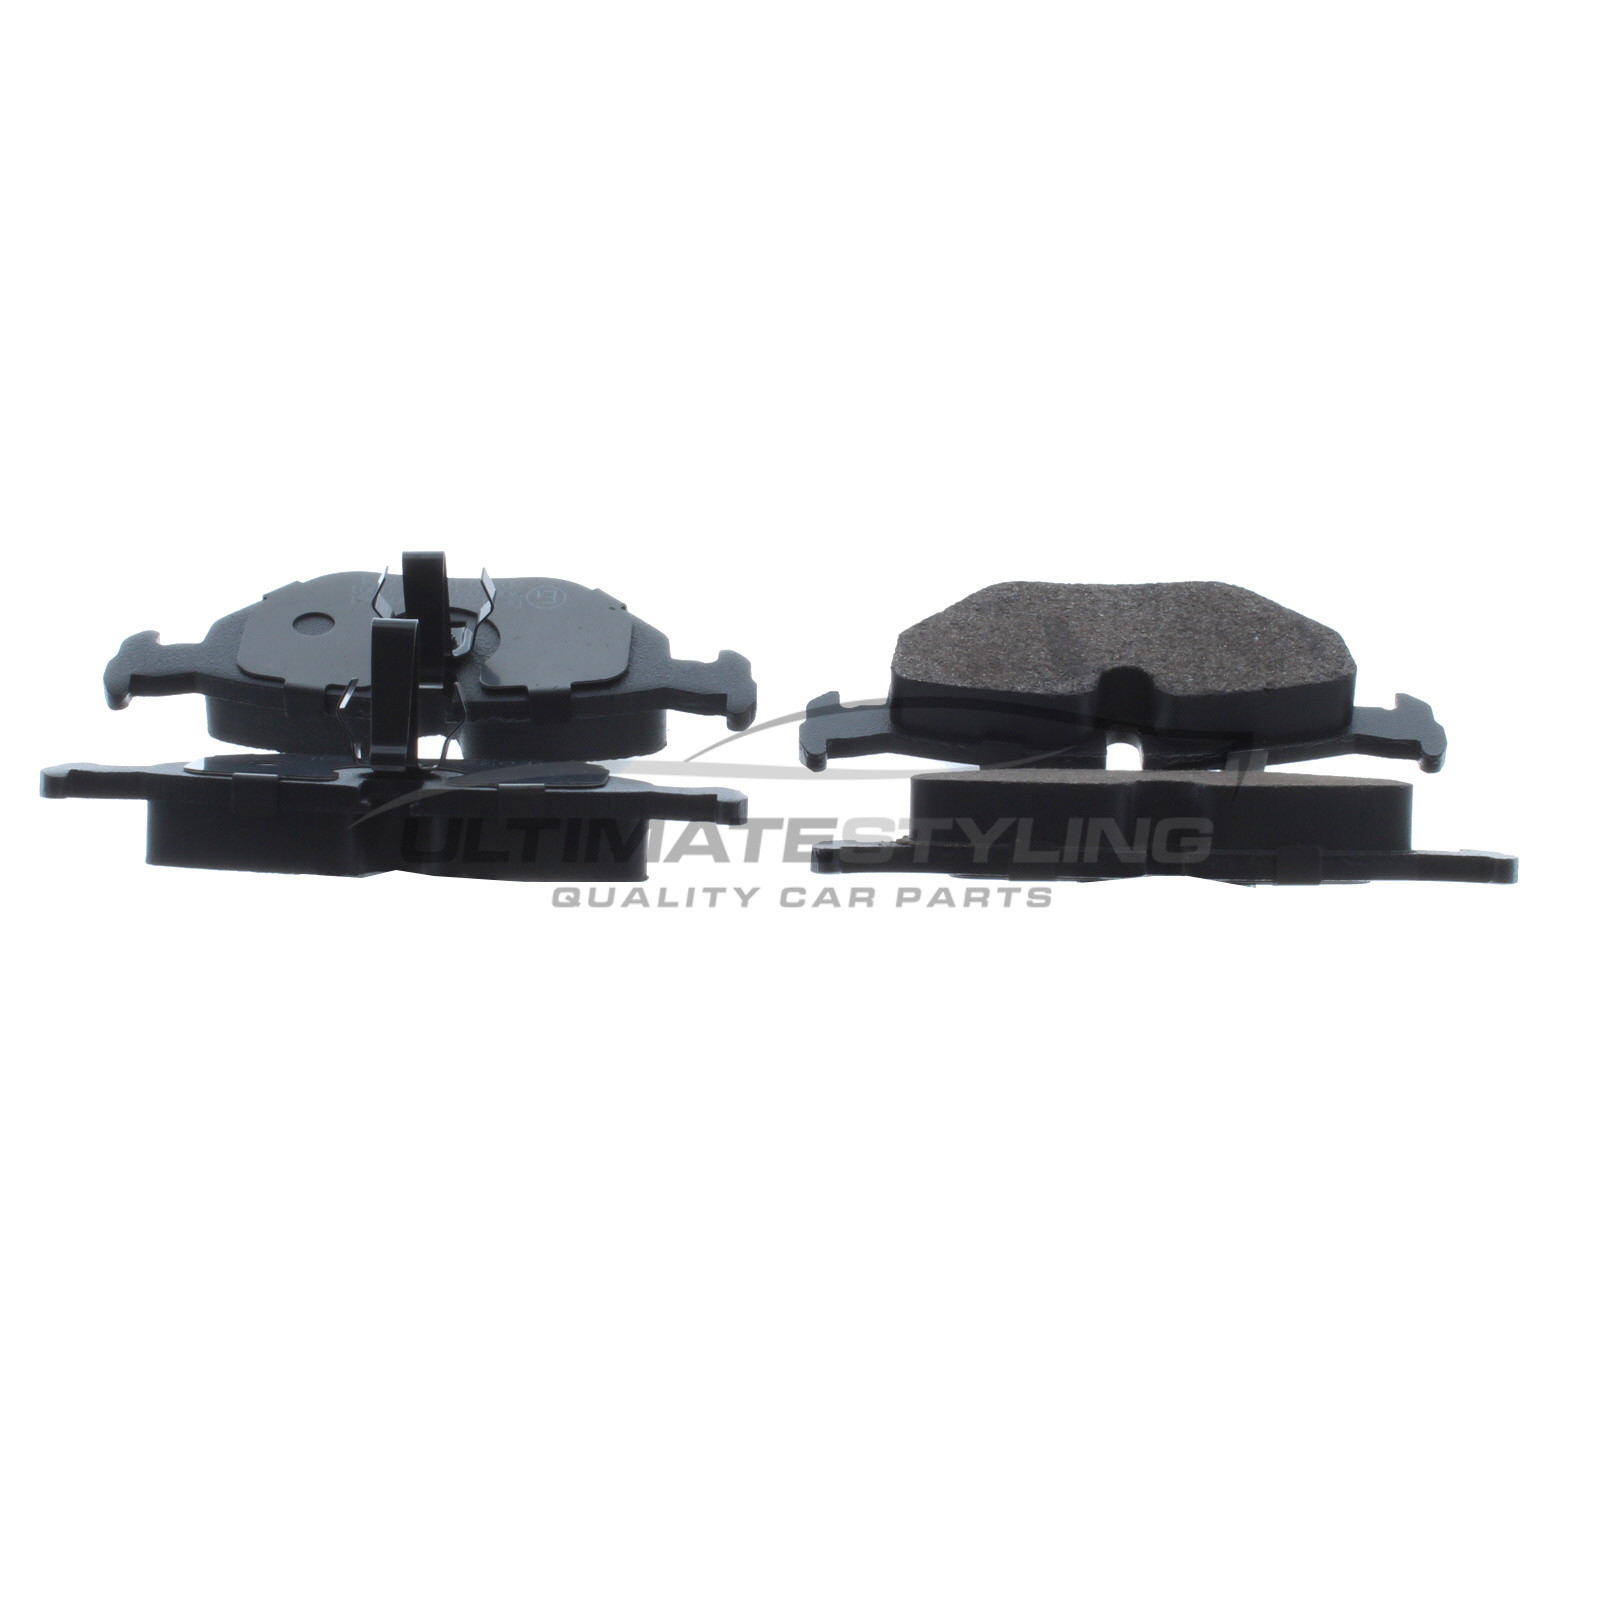 FRONT BRAKE PADS FIT BMW 3 SERIES 99  X3 04  Z4 06 07 MG MG ZT 03 05 ROVER 75 03